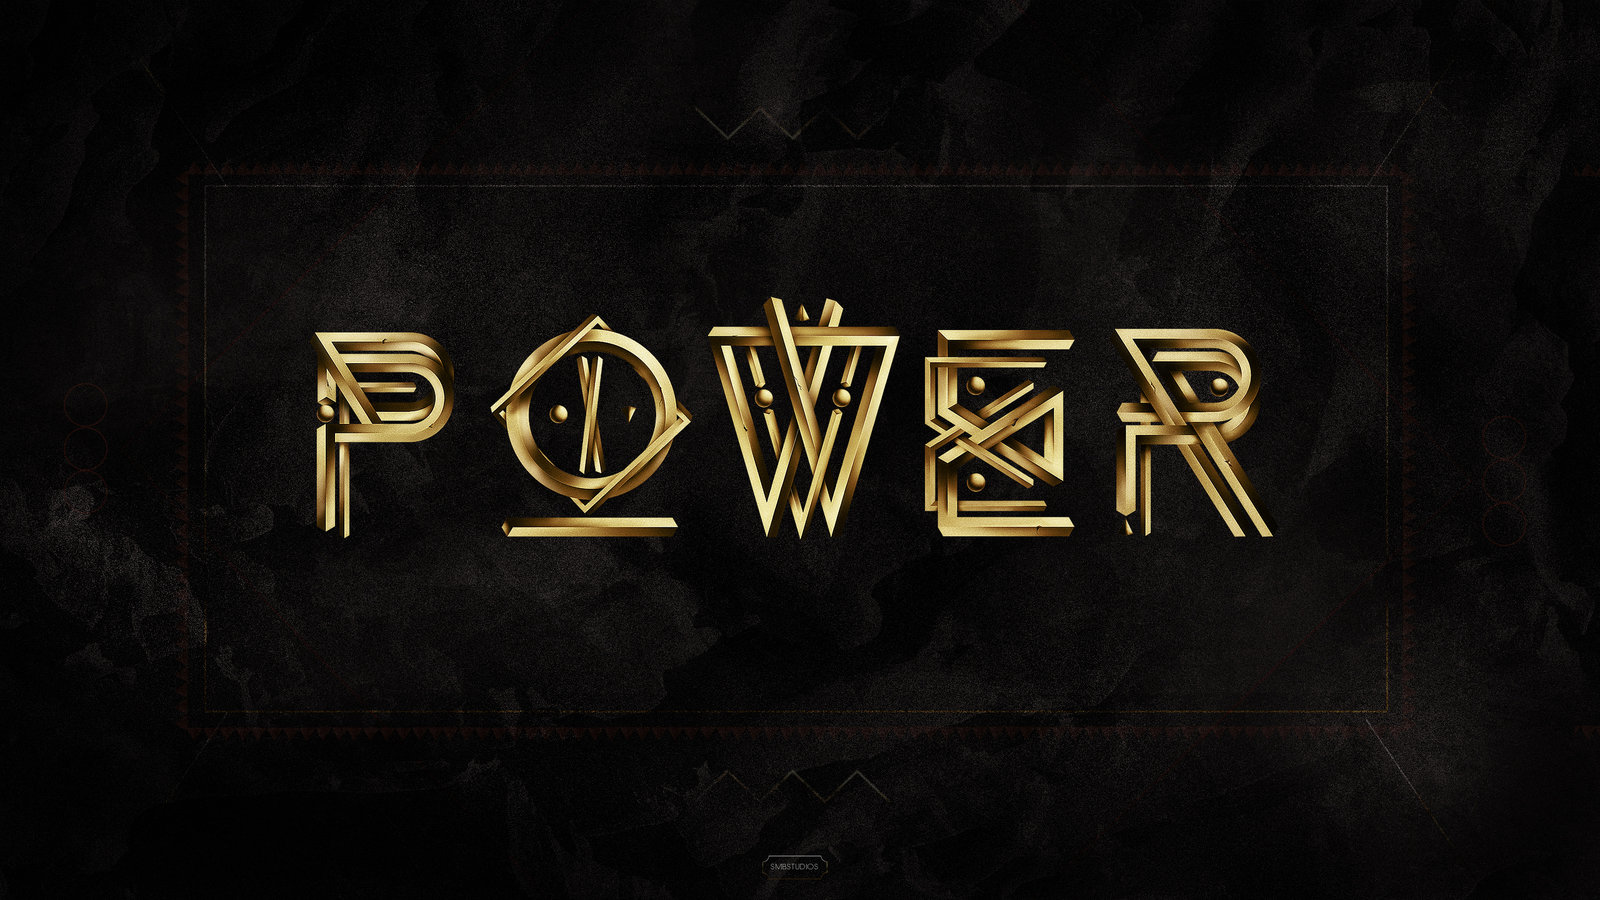 power_2011_wallpaper_by_crymz-d4880we